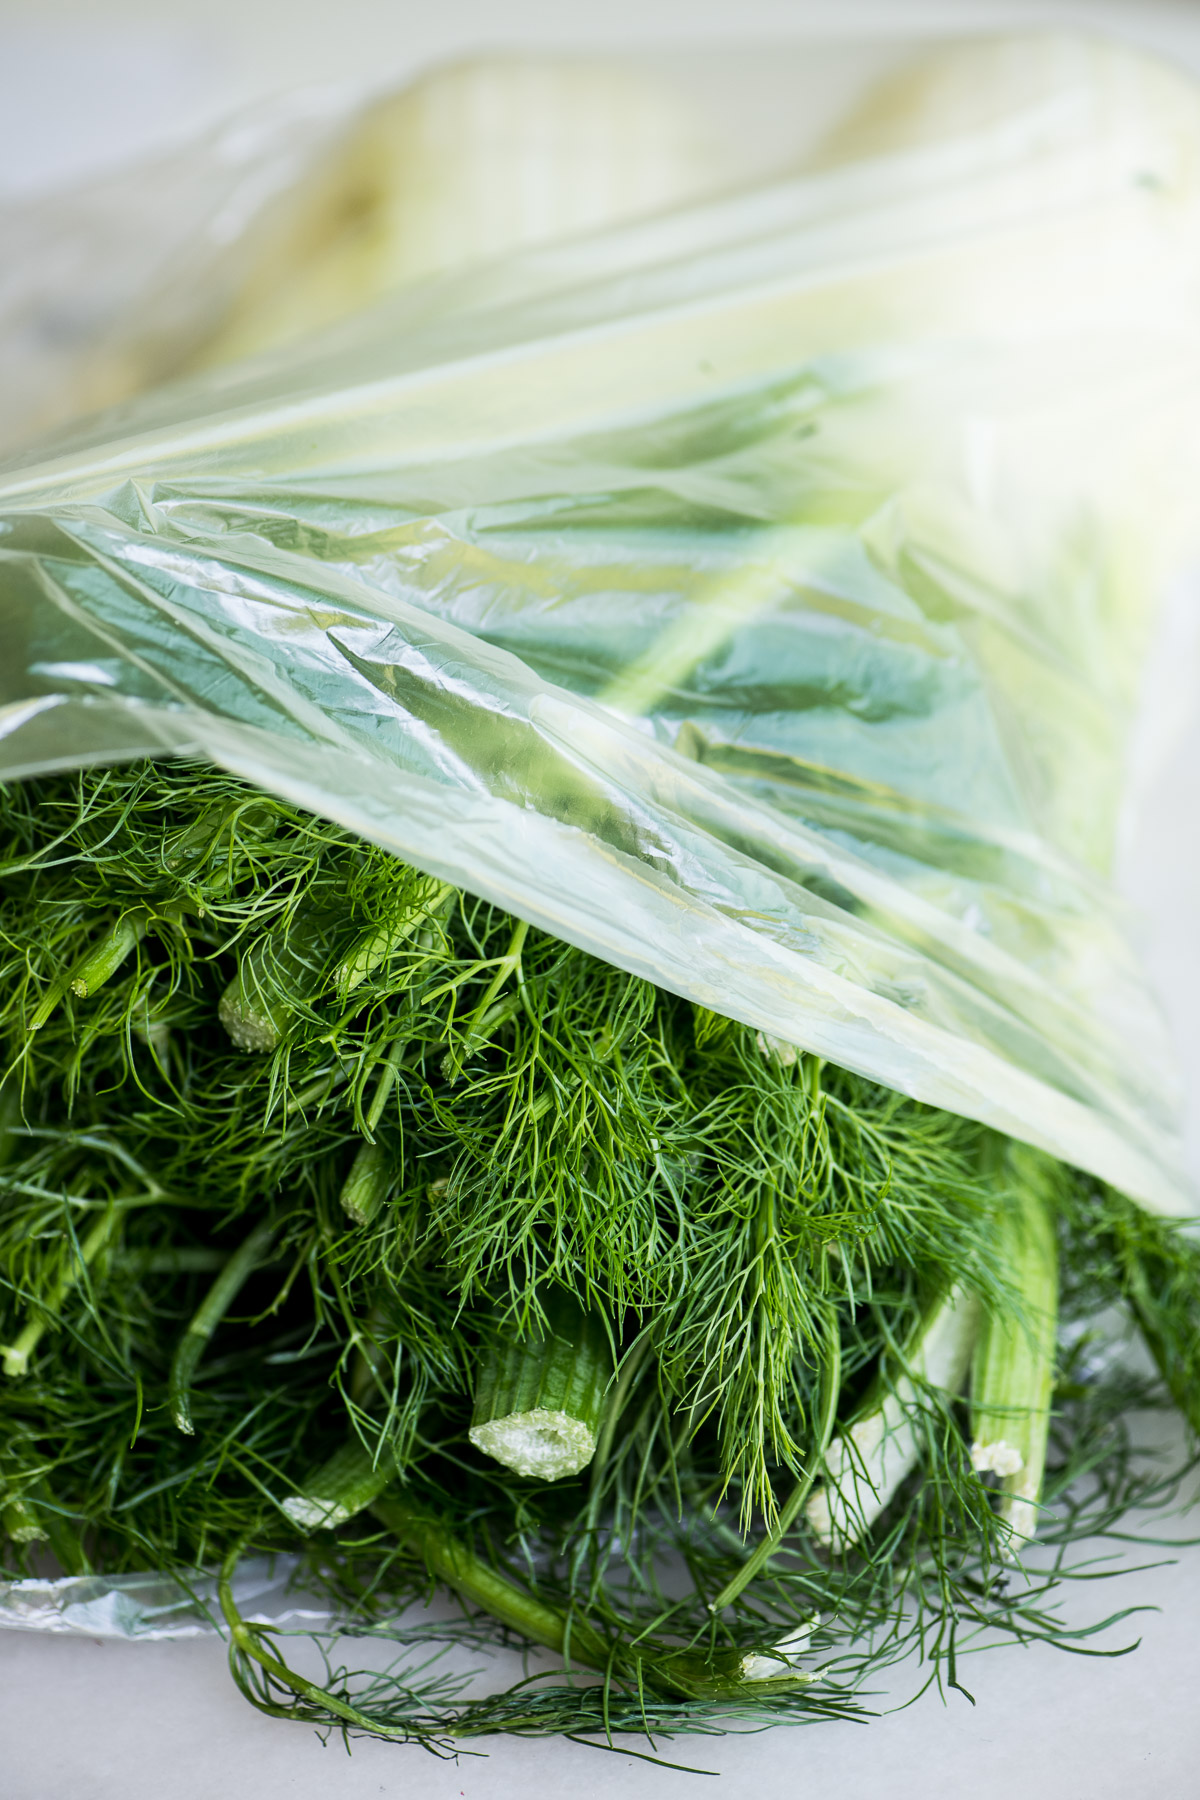 bulbs of fresh fennel, in a plastic bag